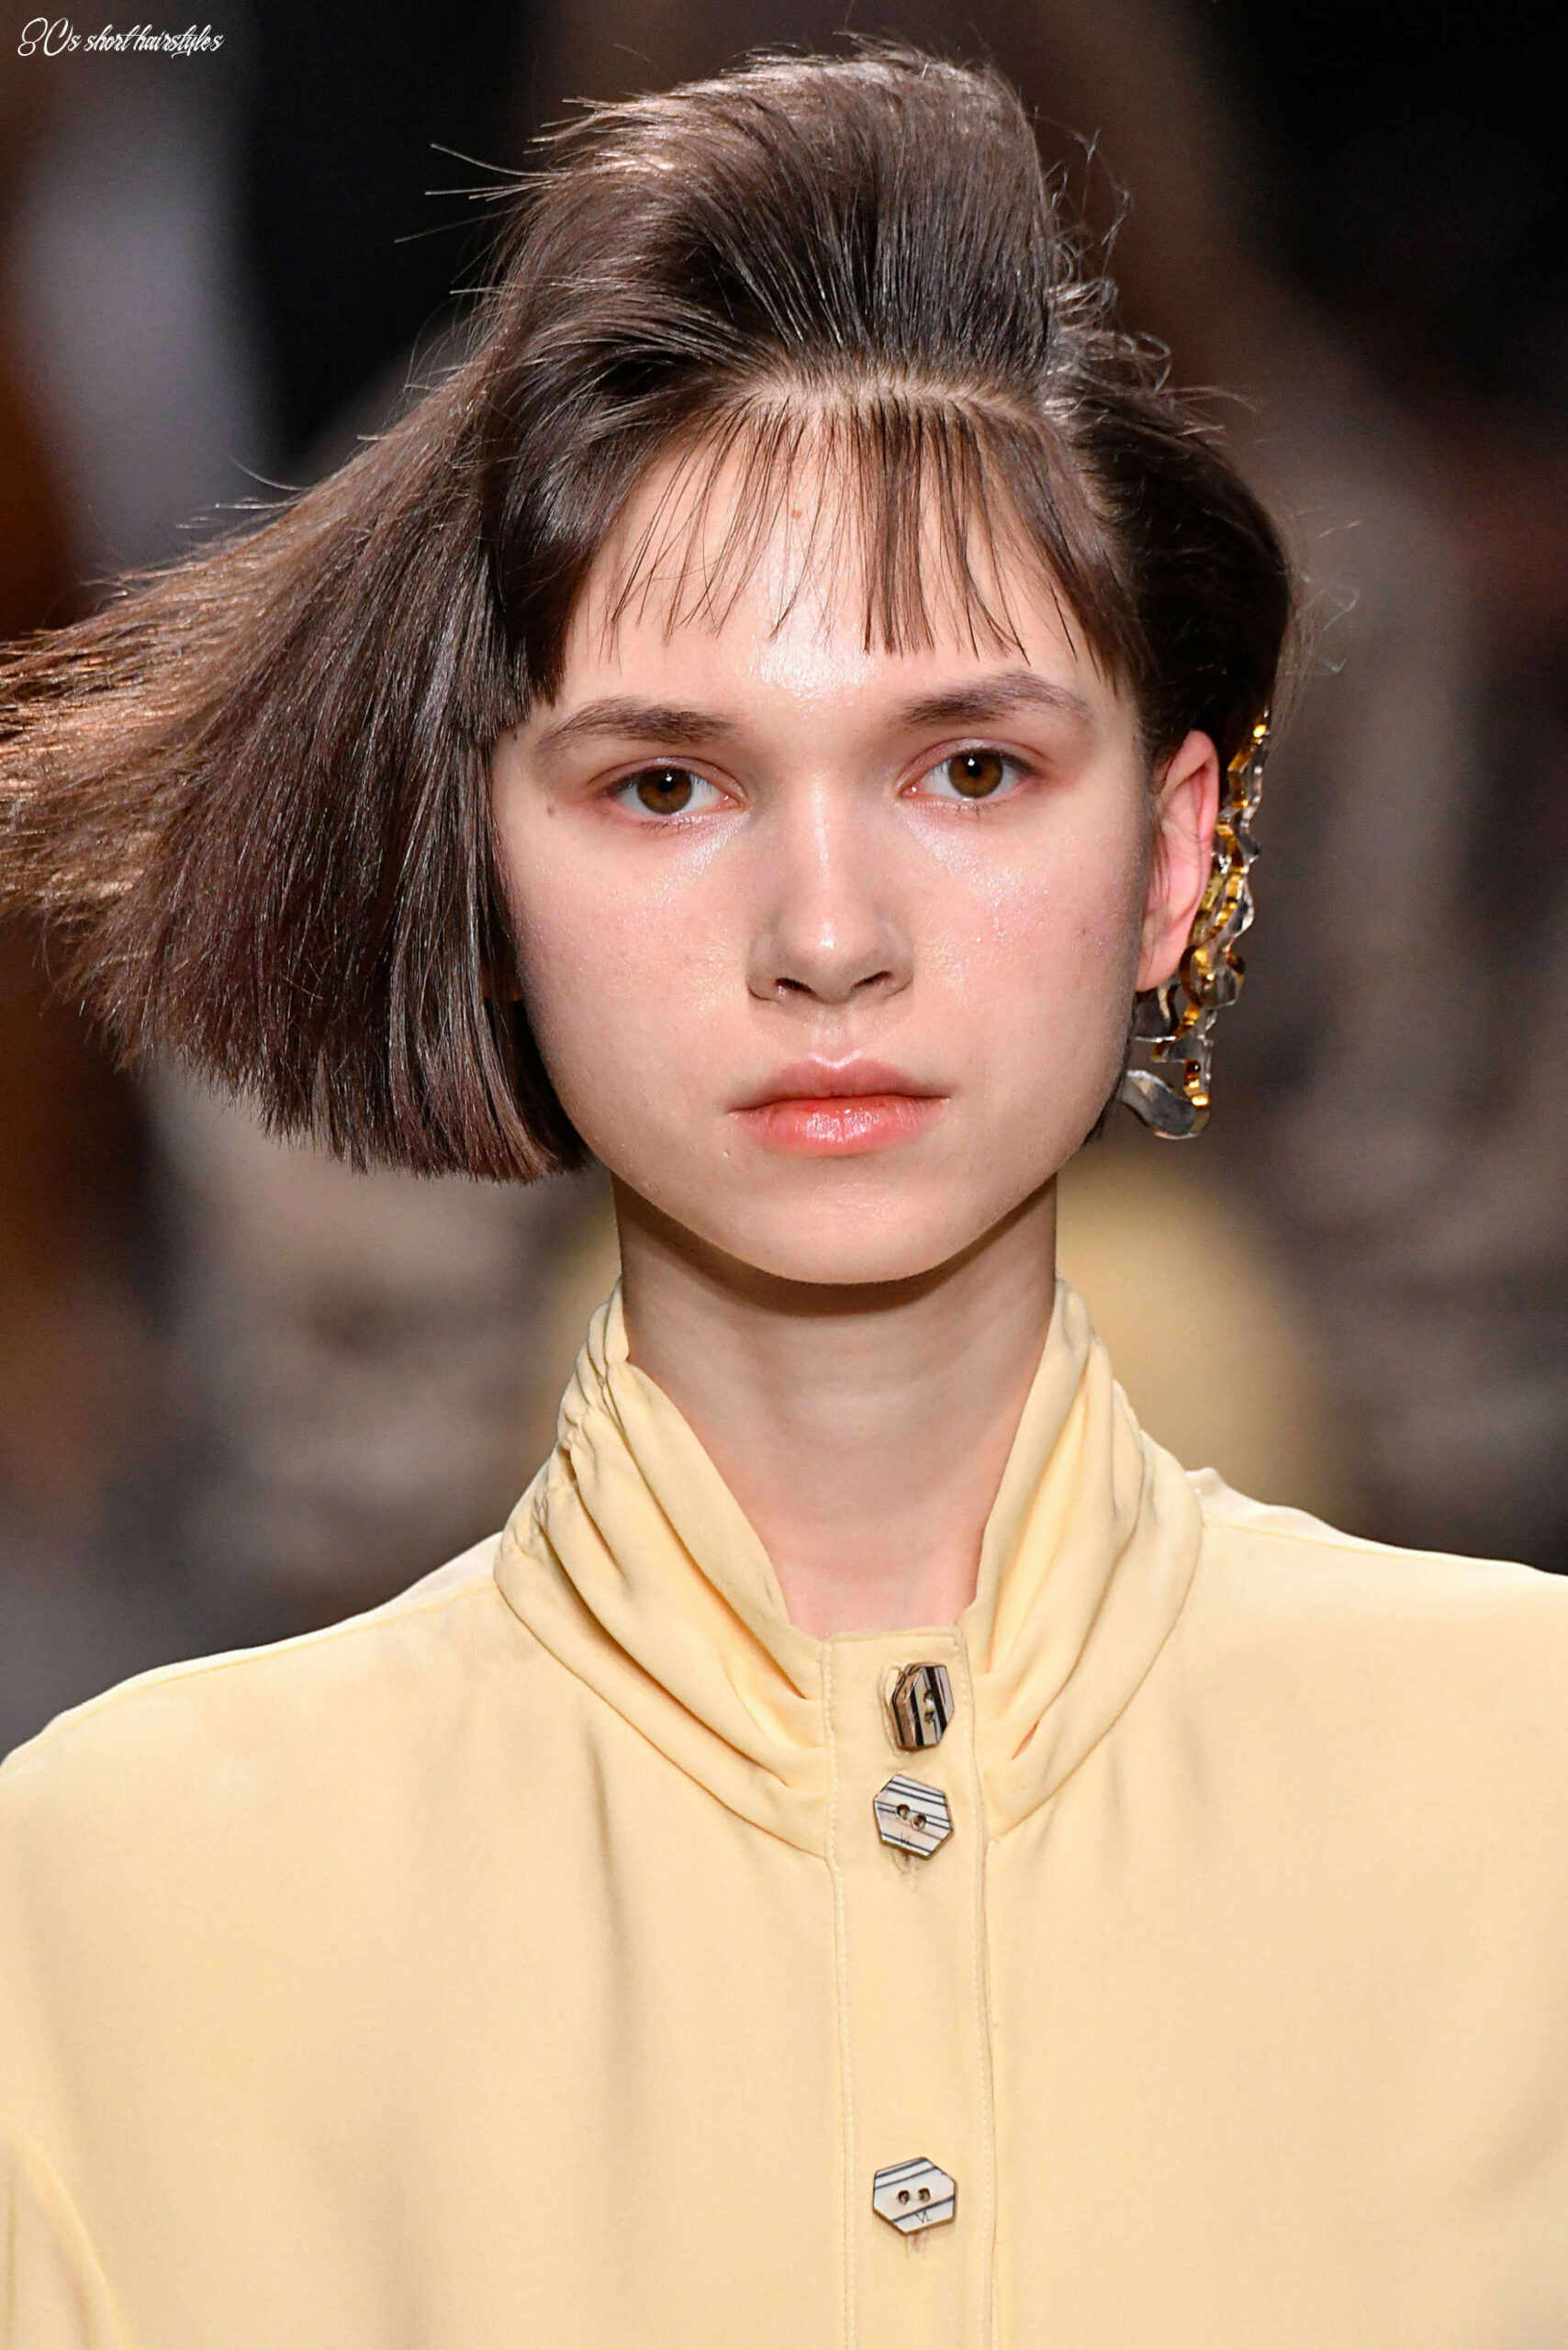 11 Totally Tubular '11s Hairstyles and Trends We're (Still) Loving ...